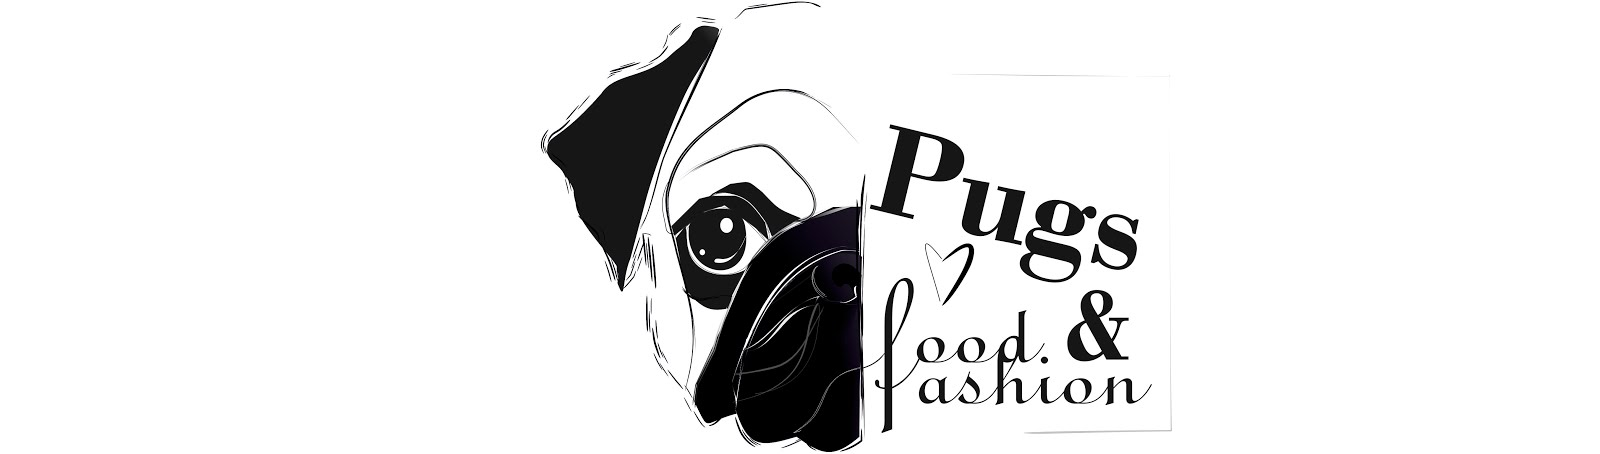 Pugslovefood&fashion